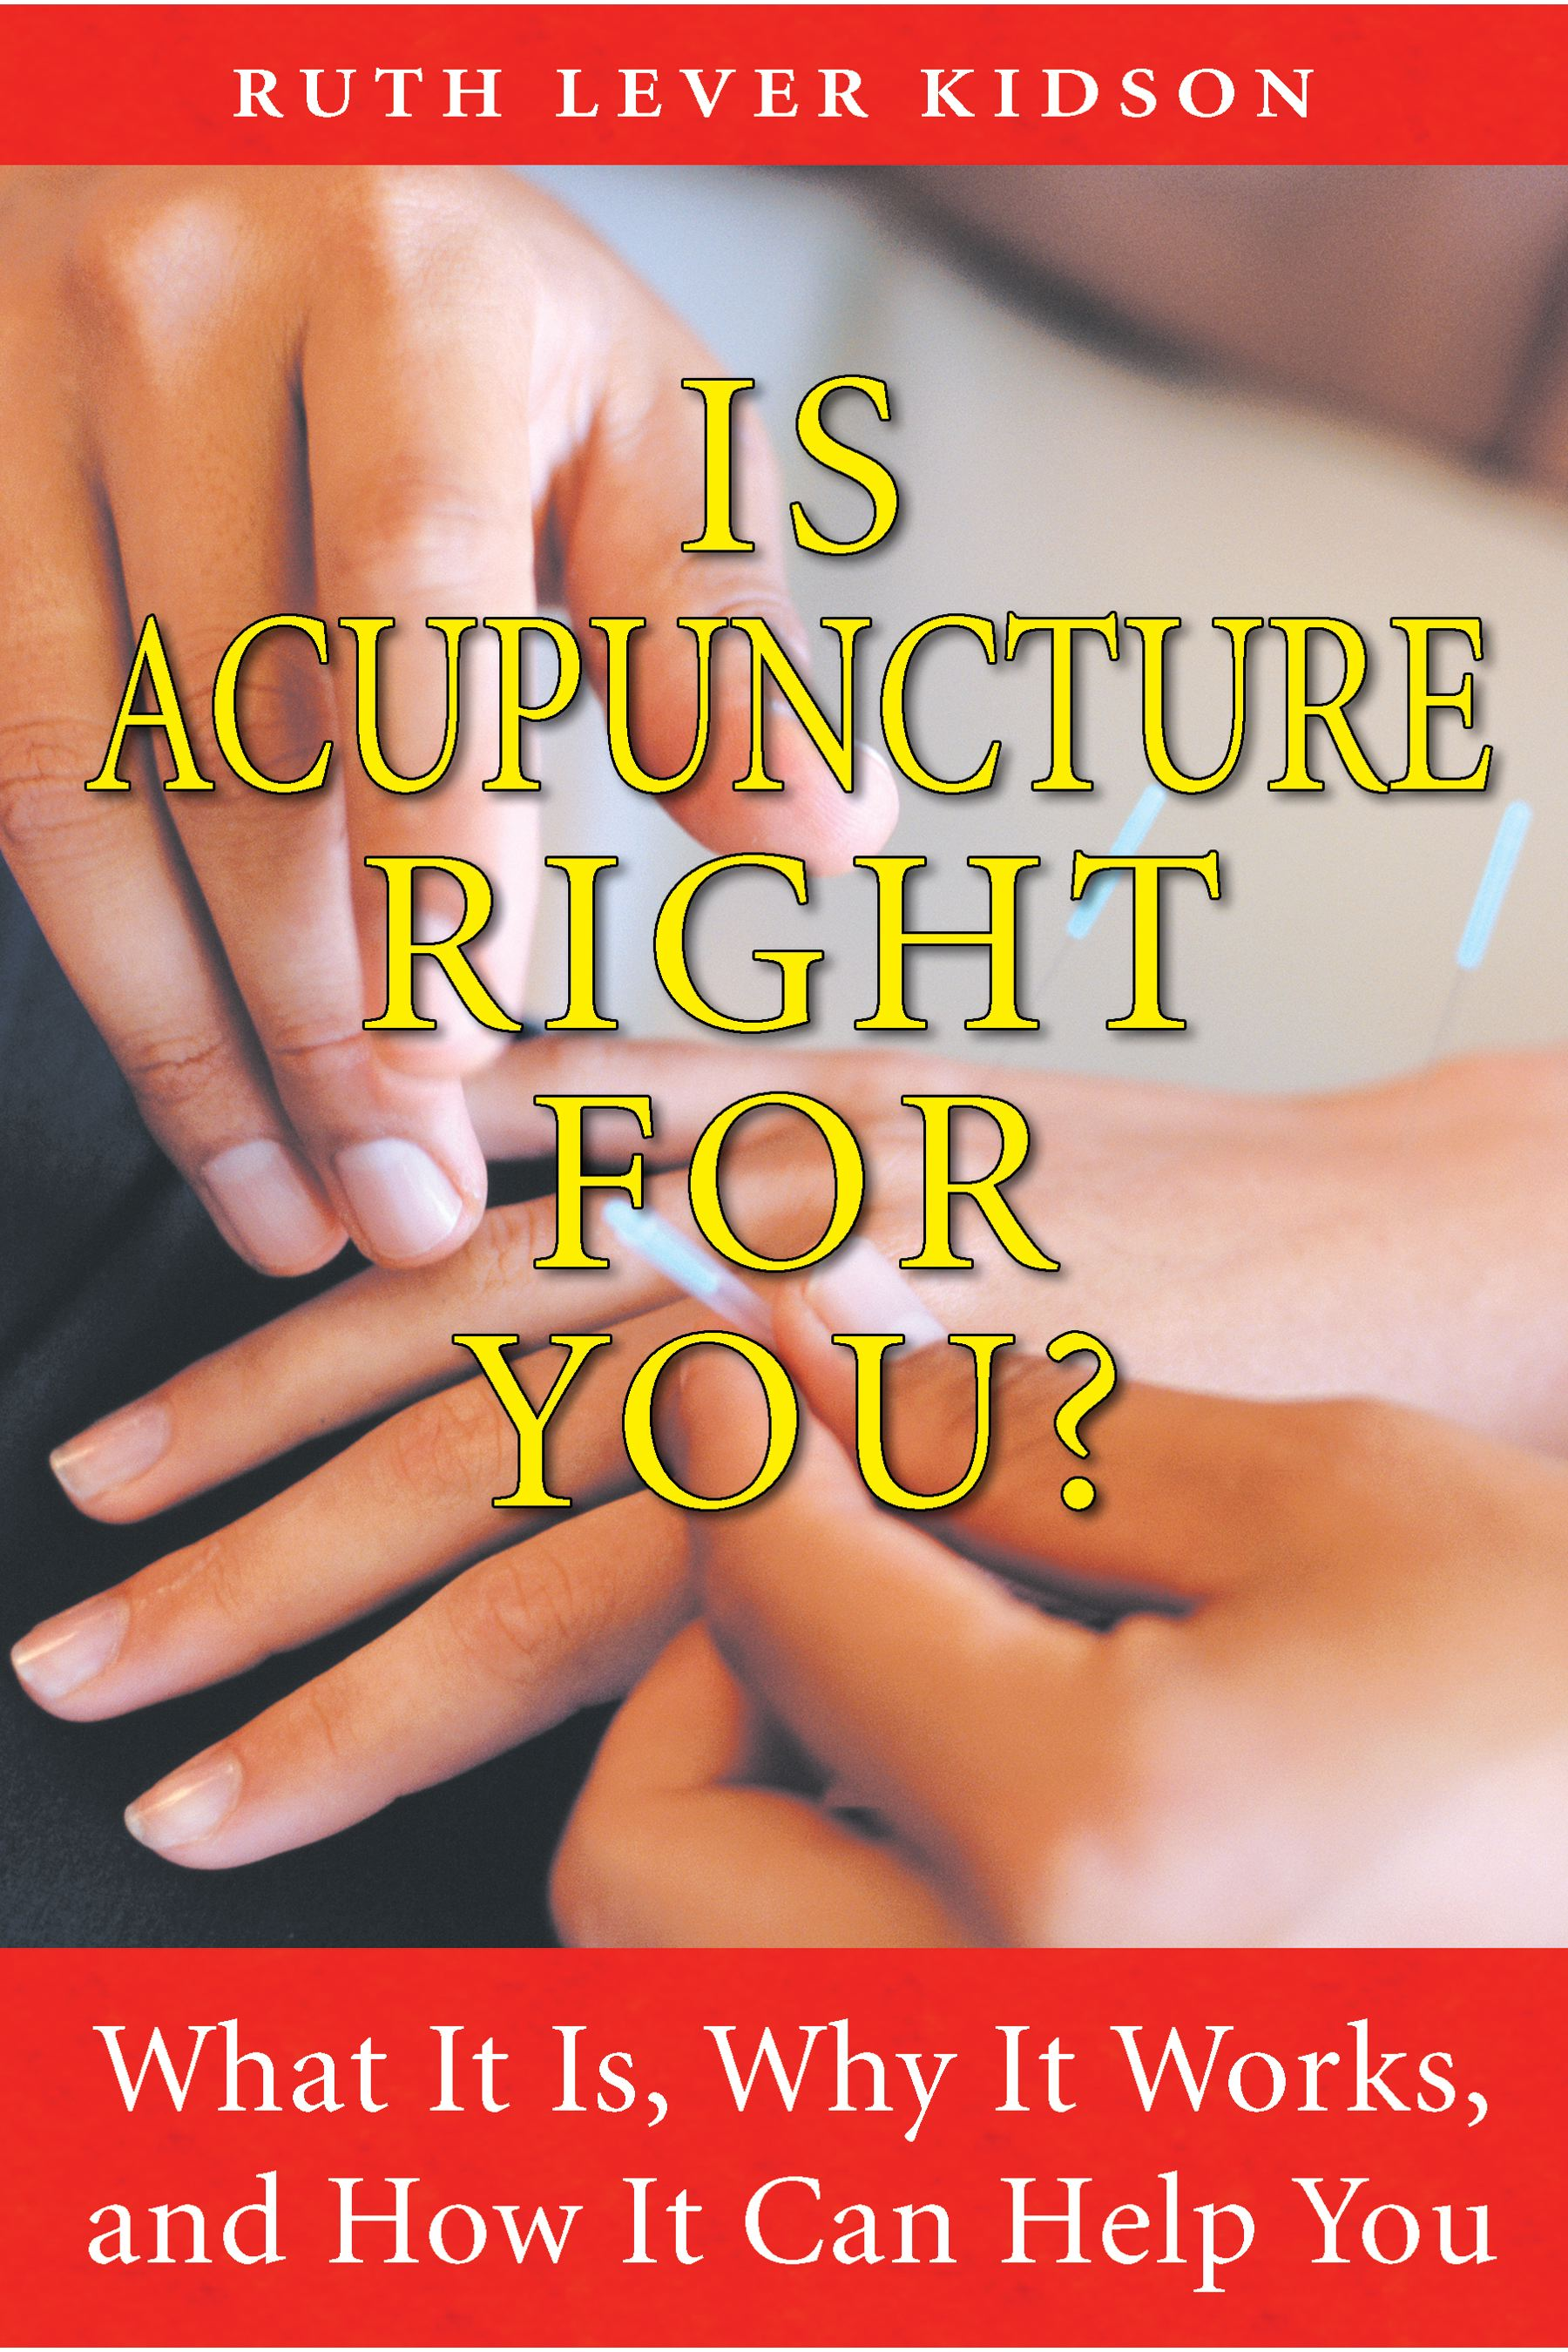 Is acupuncture right for you 9781594772672 hr